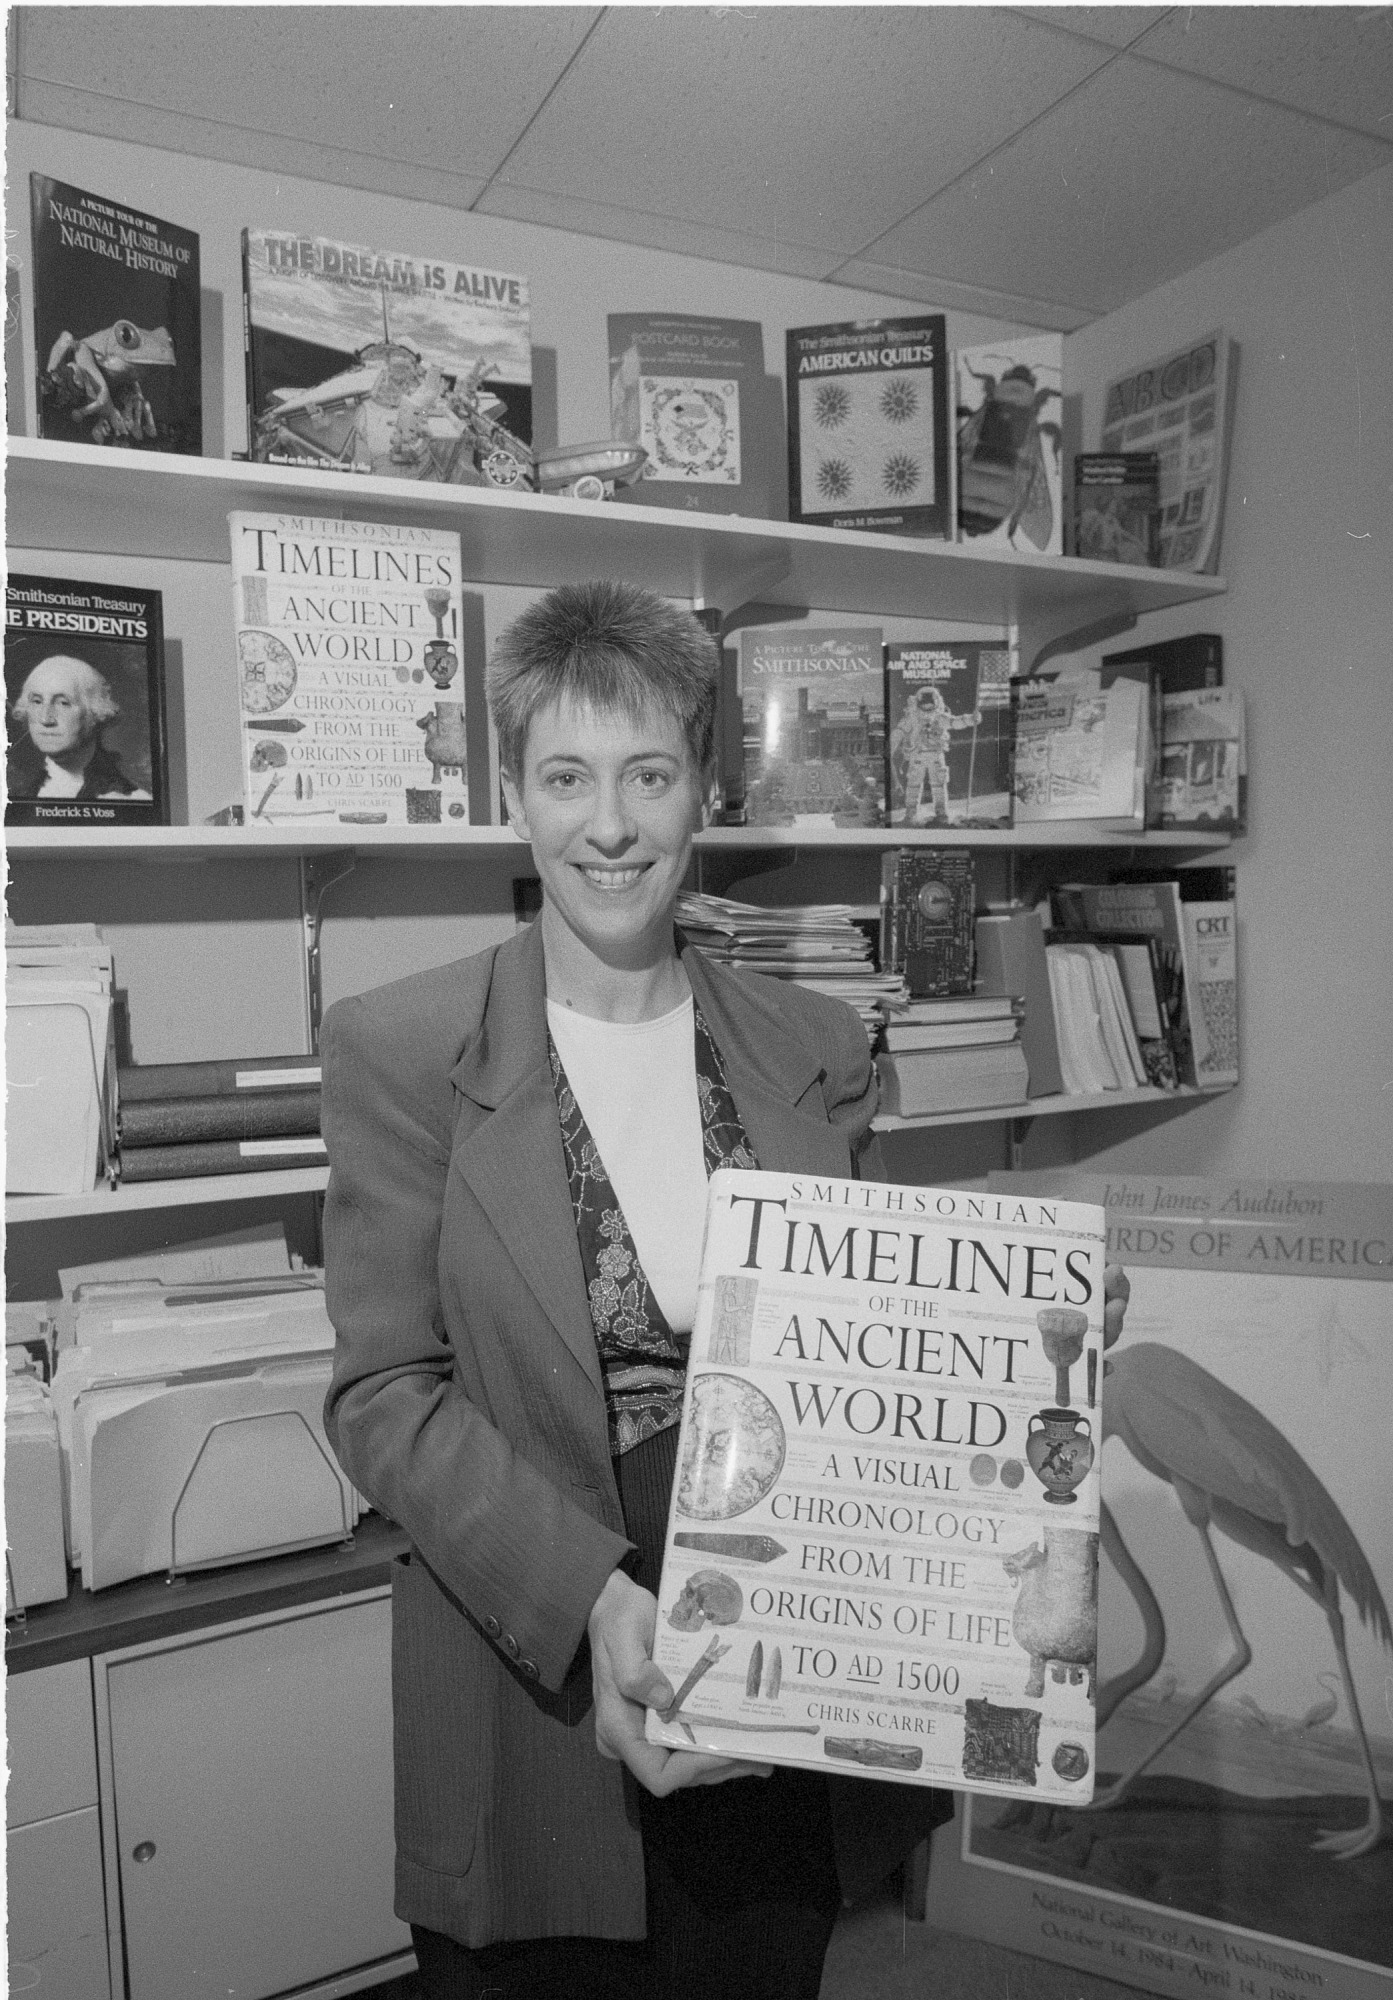 Caroline Newman, by Vargas, Rick, 1993, Smithsonian Archives - History Div, 93-13240-7A.